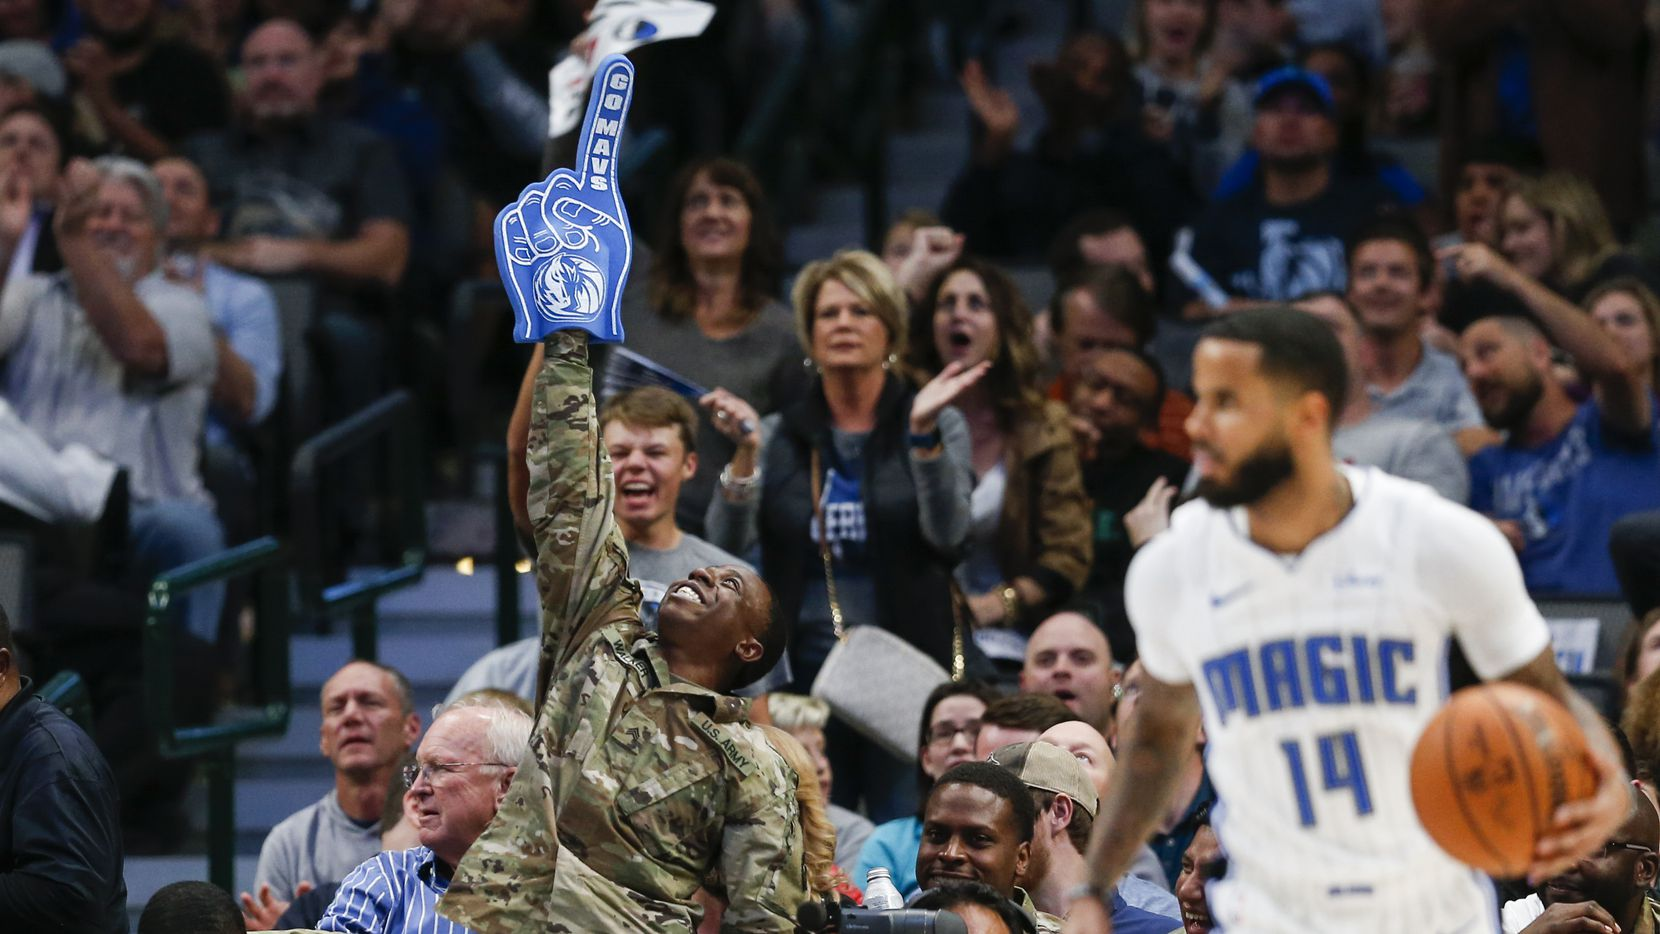 Armed forces members celebrate from the sidelines during the third quarter of an NBA game between the Dallas Mavericks and the Orlando Magic on Wednesday, Nov. 6, 2019 at American Airlines Center in Dallas. (Ryan Michalesko/The Dallas Morning News)